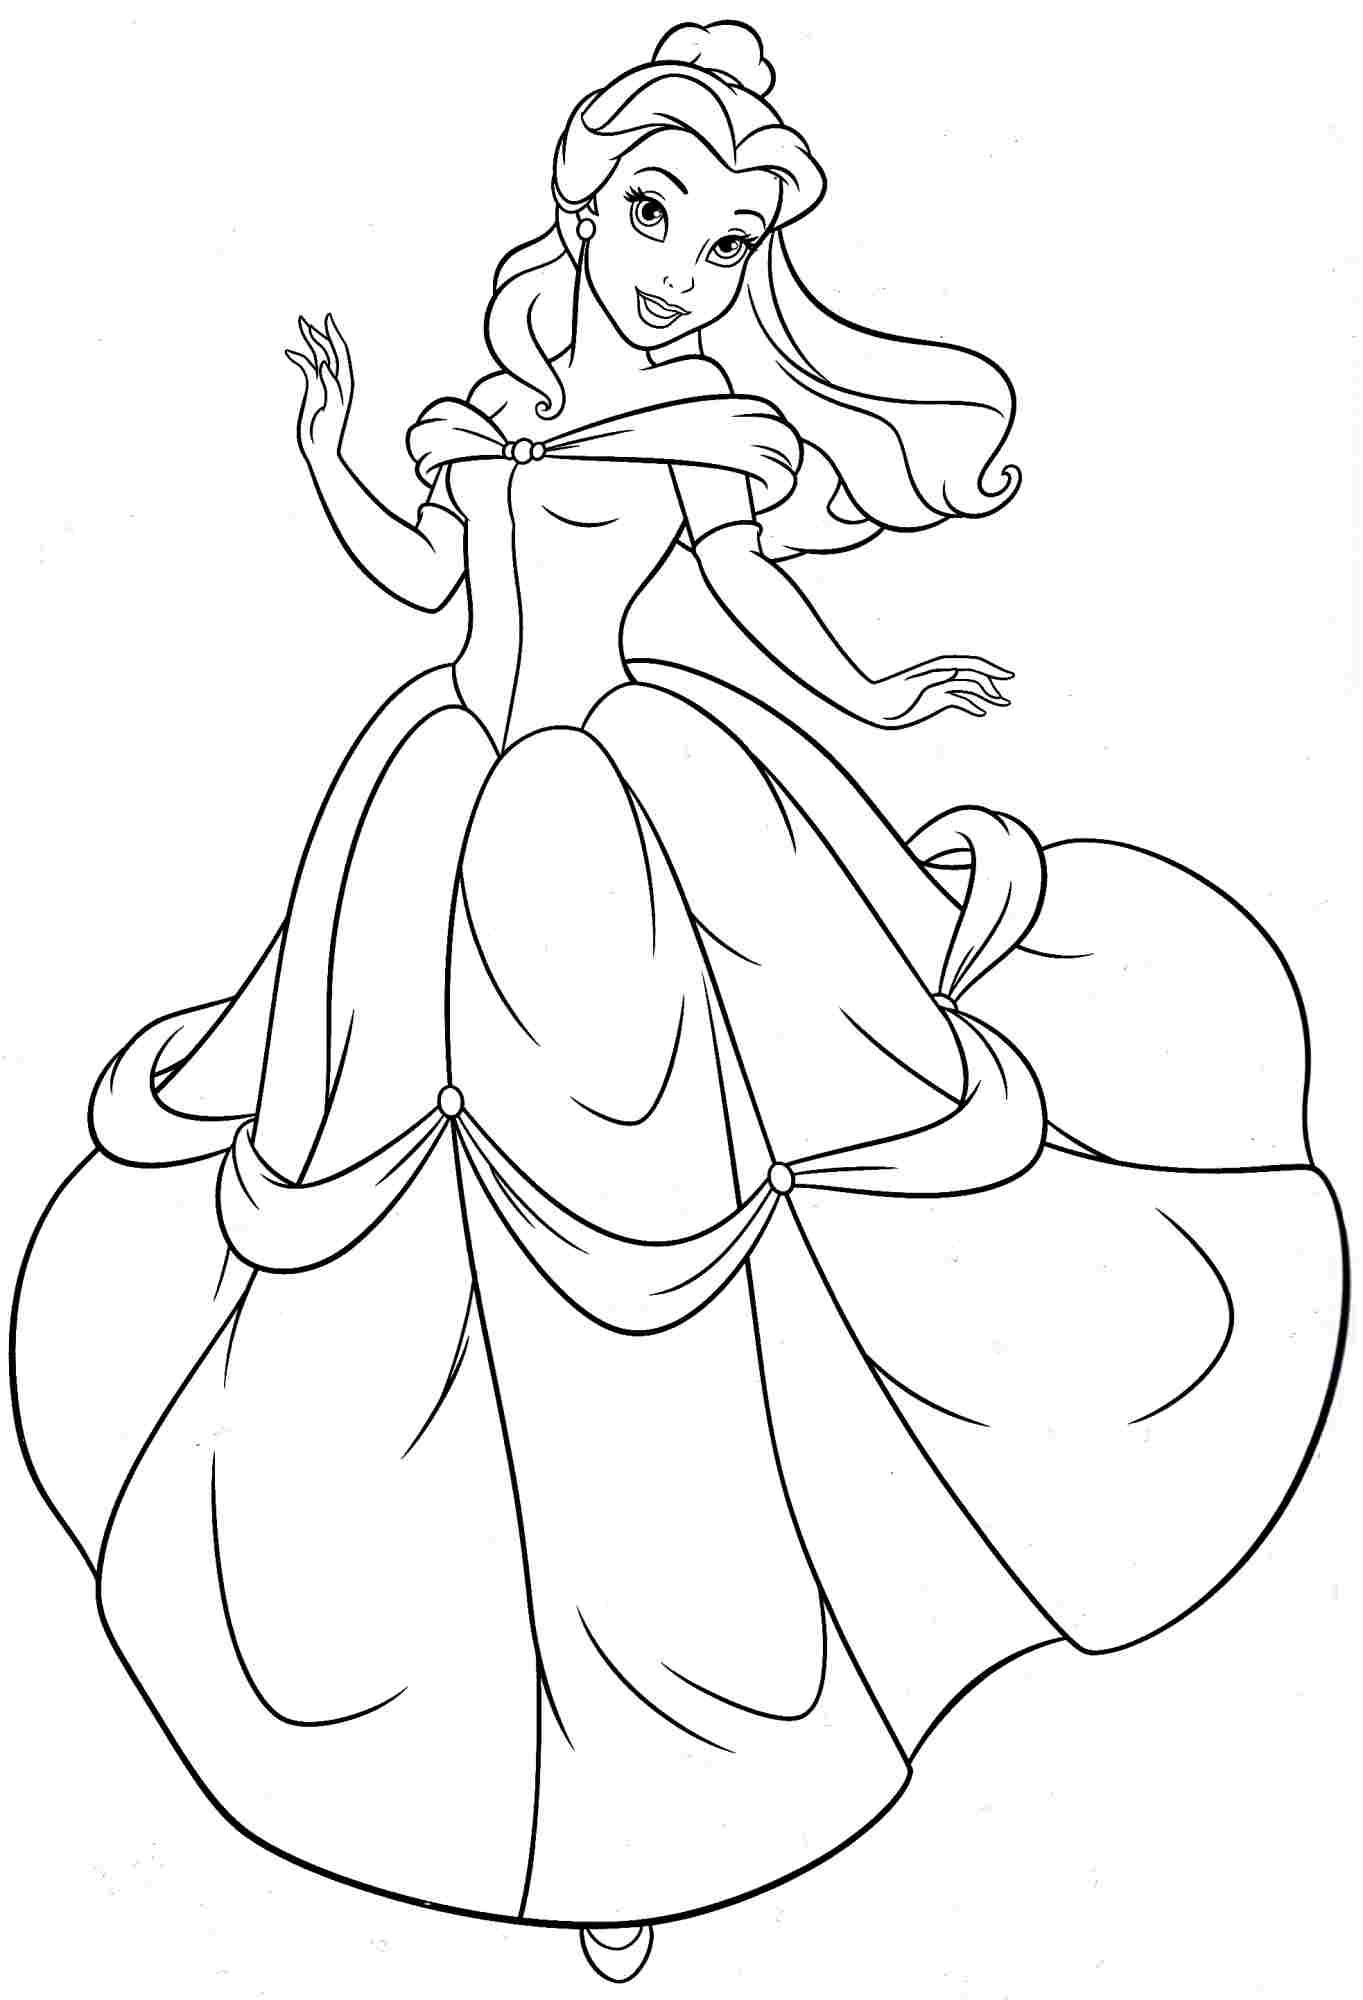 Disney Princess Belle Colouring Pictures | Coloring Pages ...